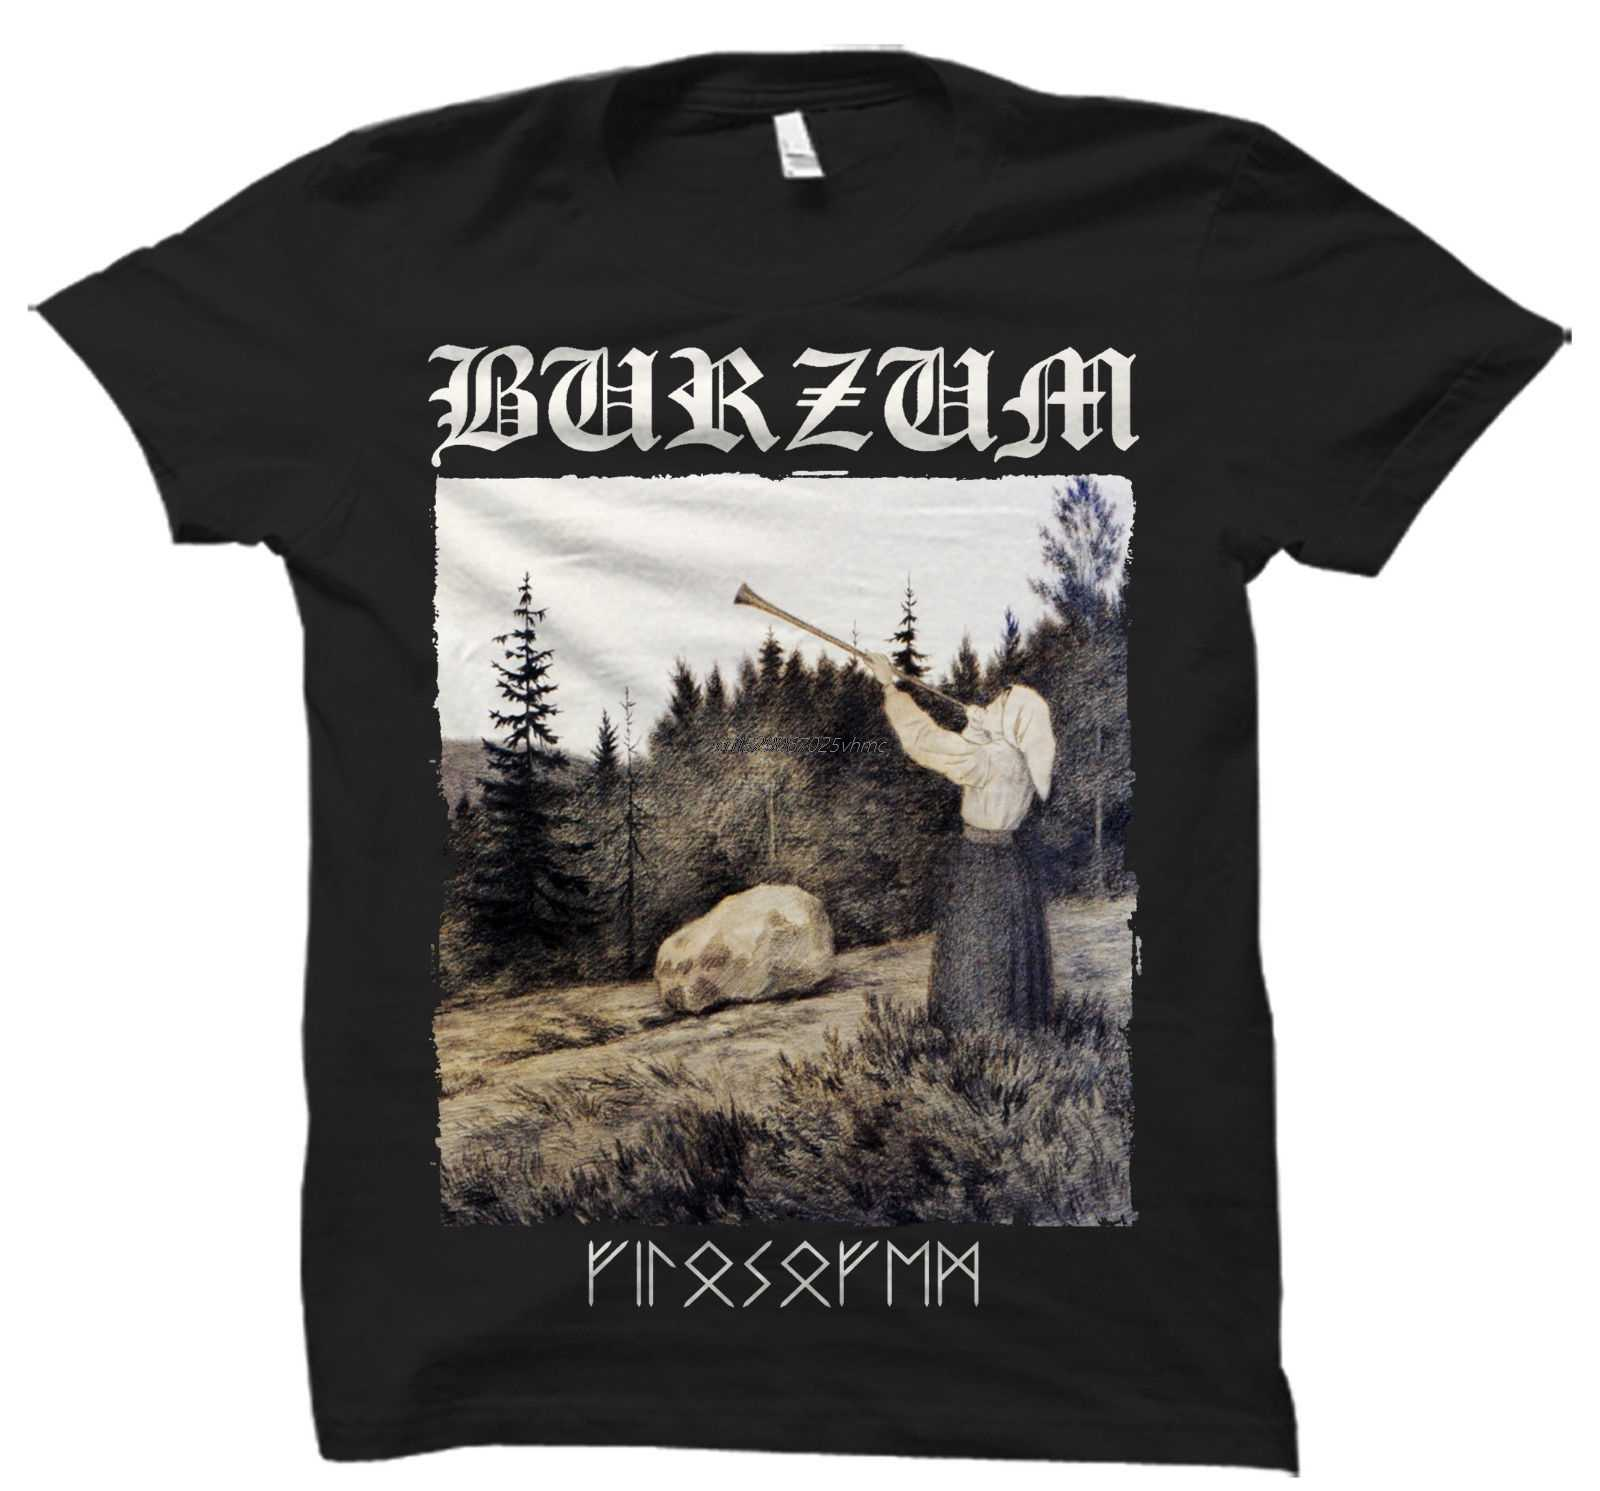 FILOSOFEM BRZM T SHIRT Schwarz Metall Mayhem Darkthrone Bathory Kaiser Unsterblich Herren Tops Kühle O Neck T-Shirt Top T Plus größe